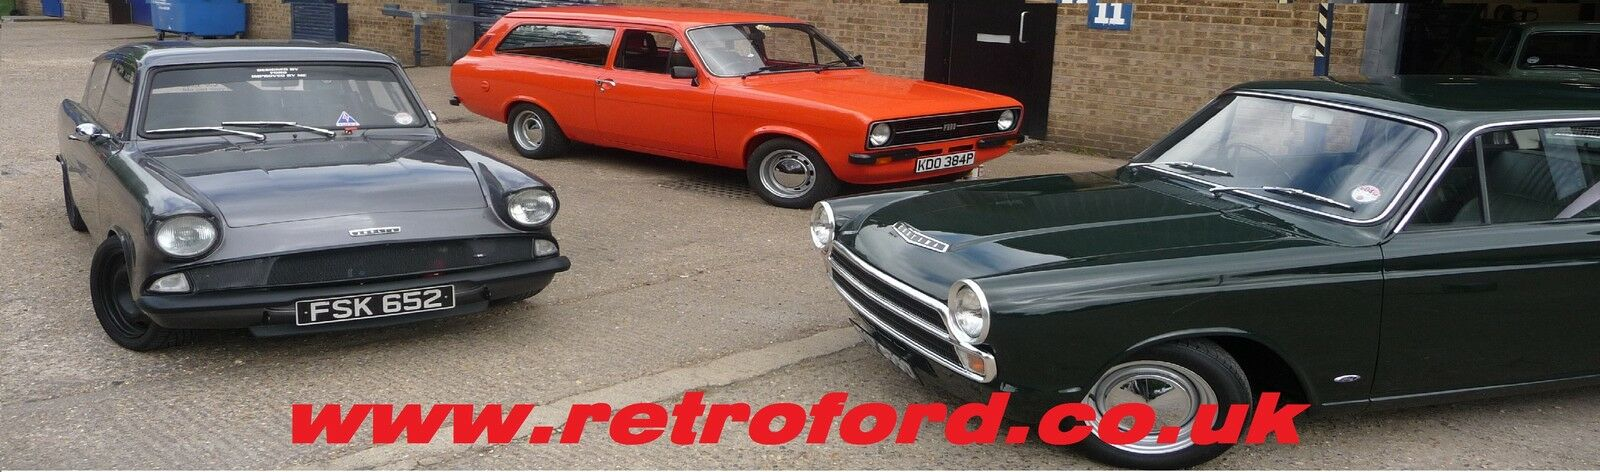 RETROFORD-LTD